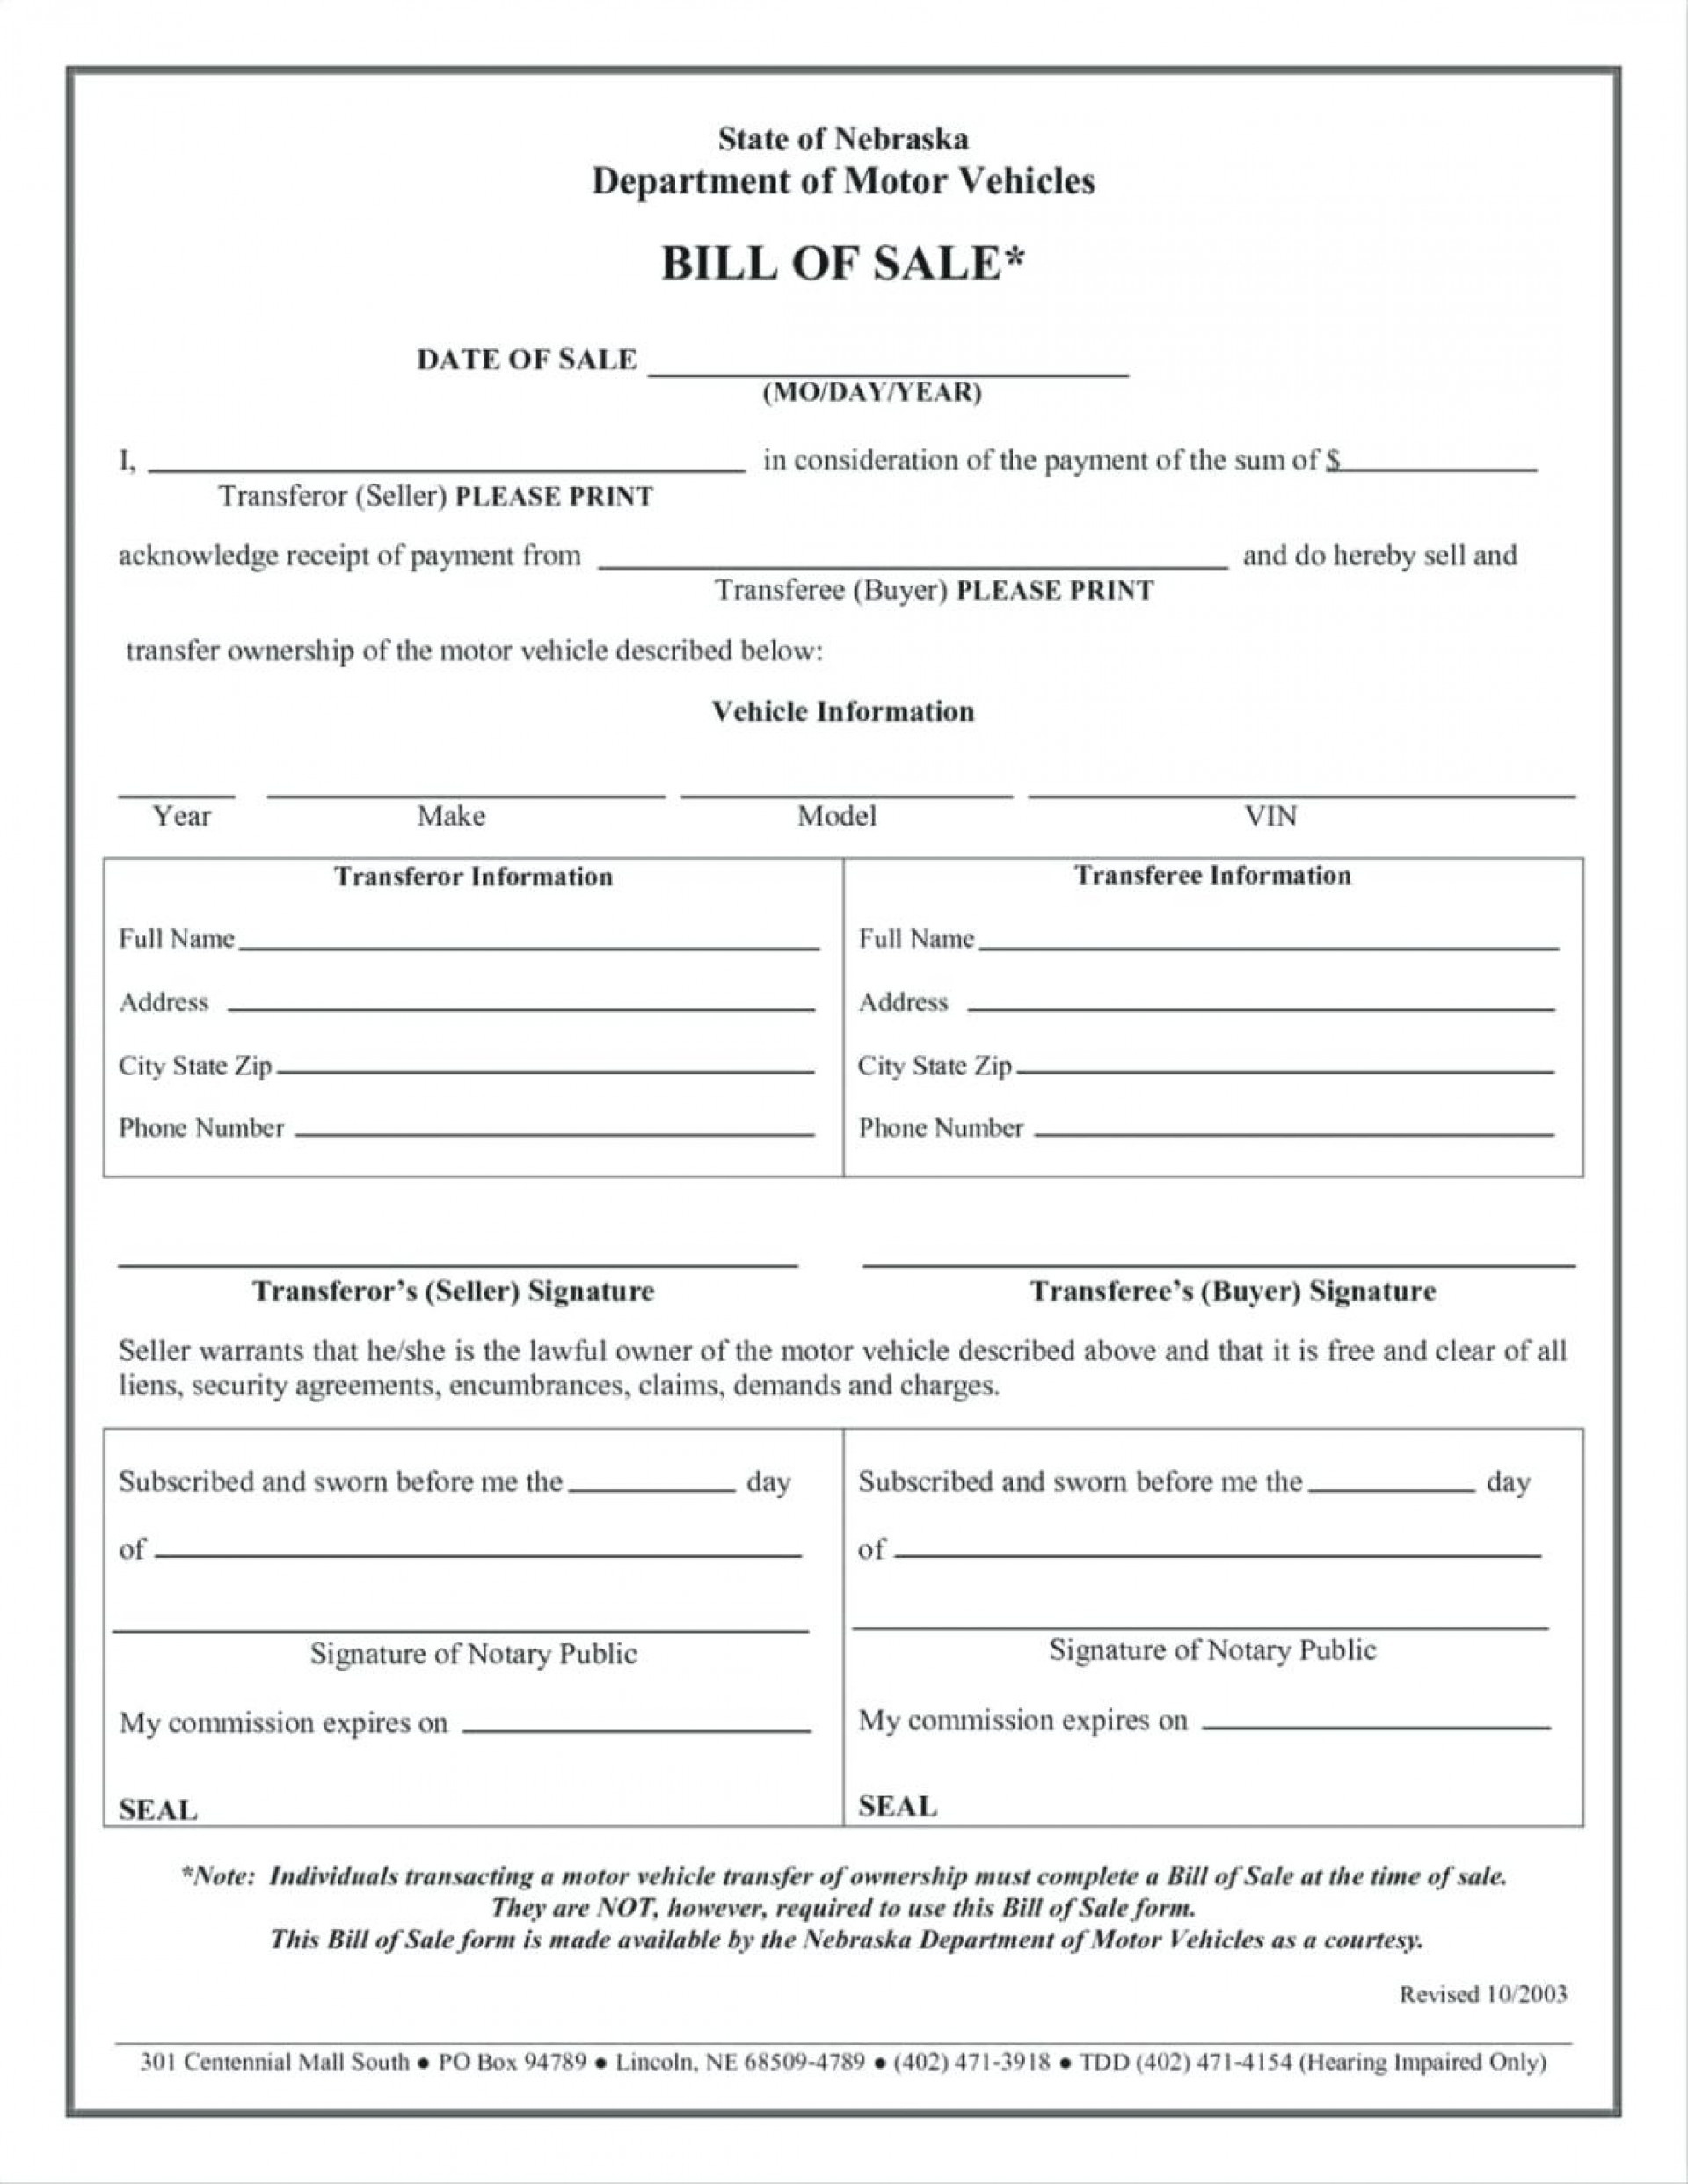 024 Free Printable Bill Of Sale Form Vehicle Template And For Mobile - Free Printable Bill Of Sale For Car